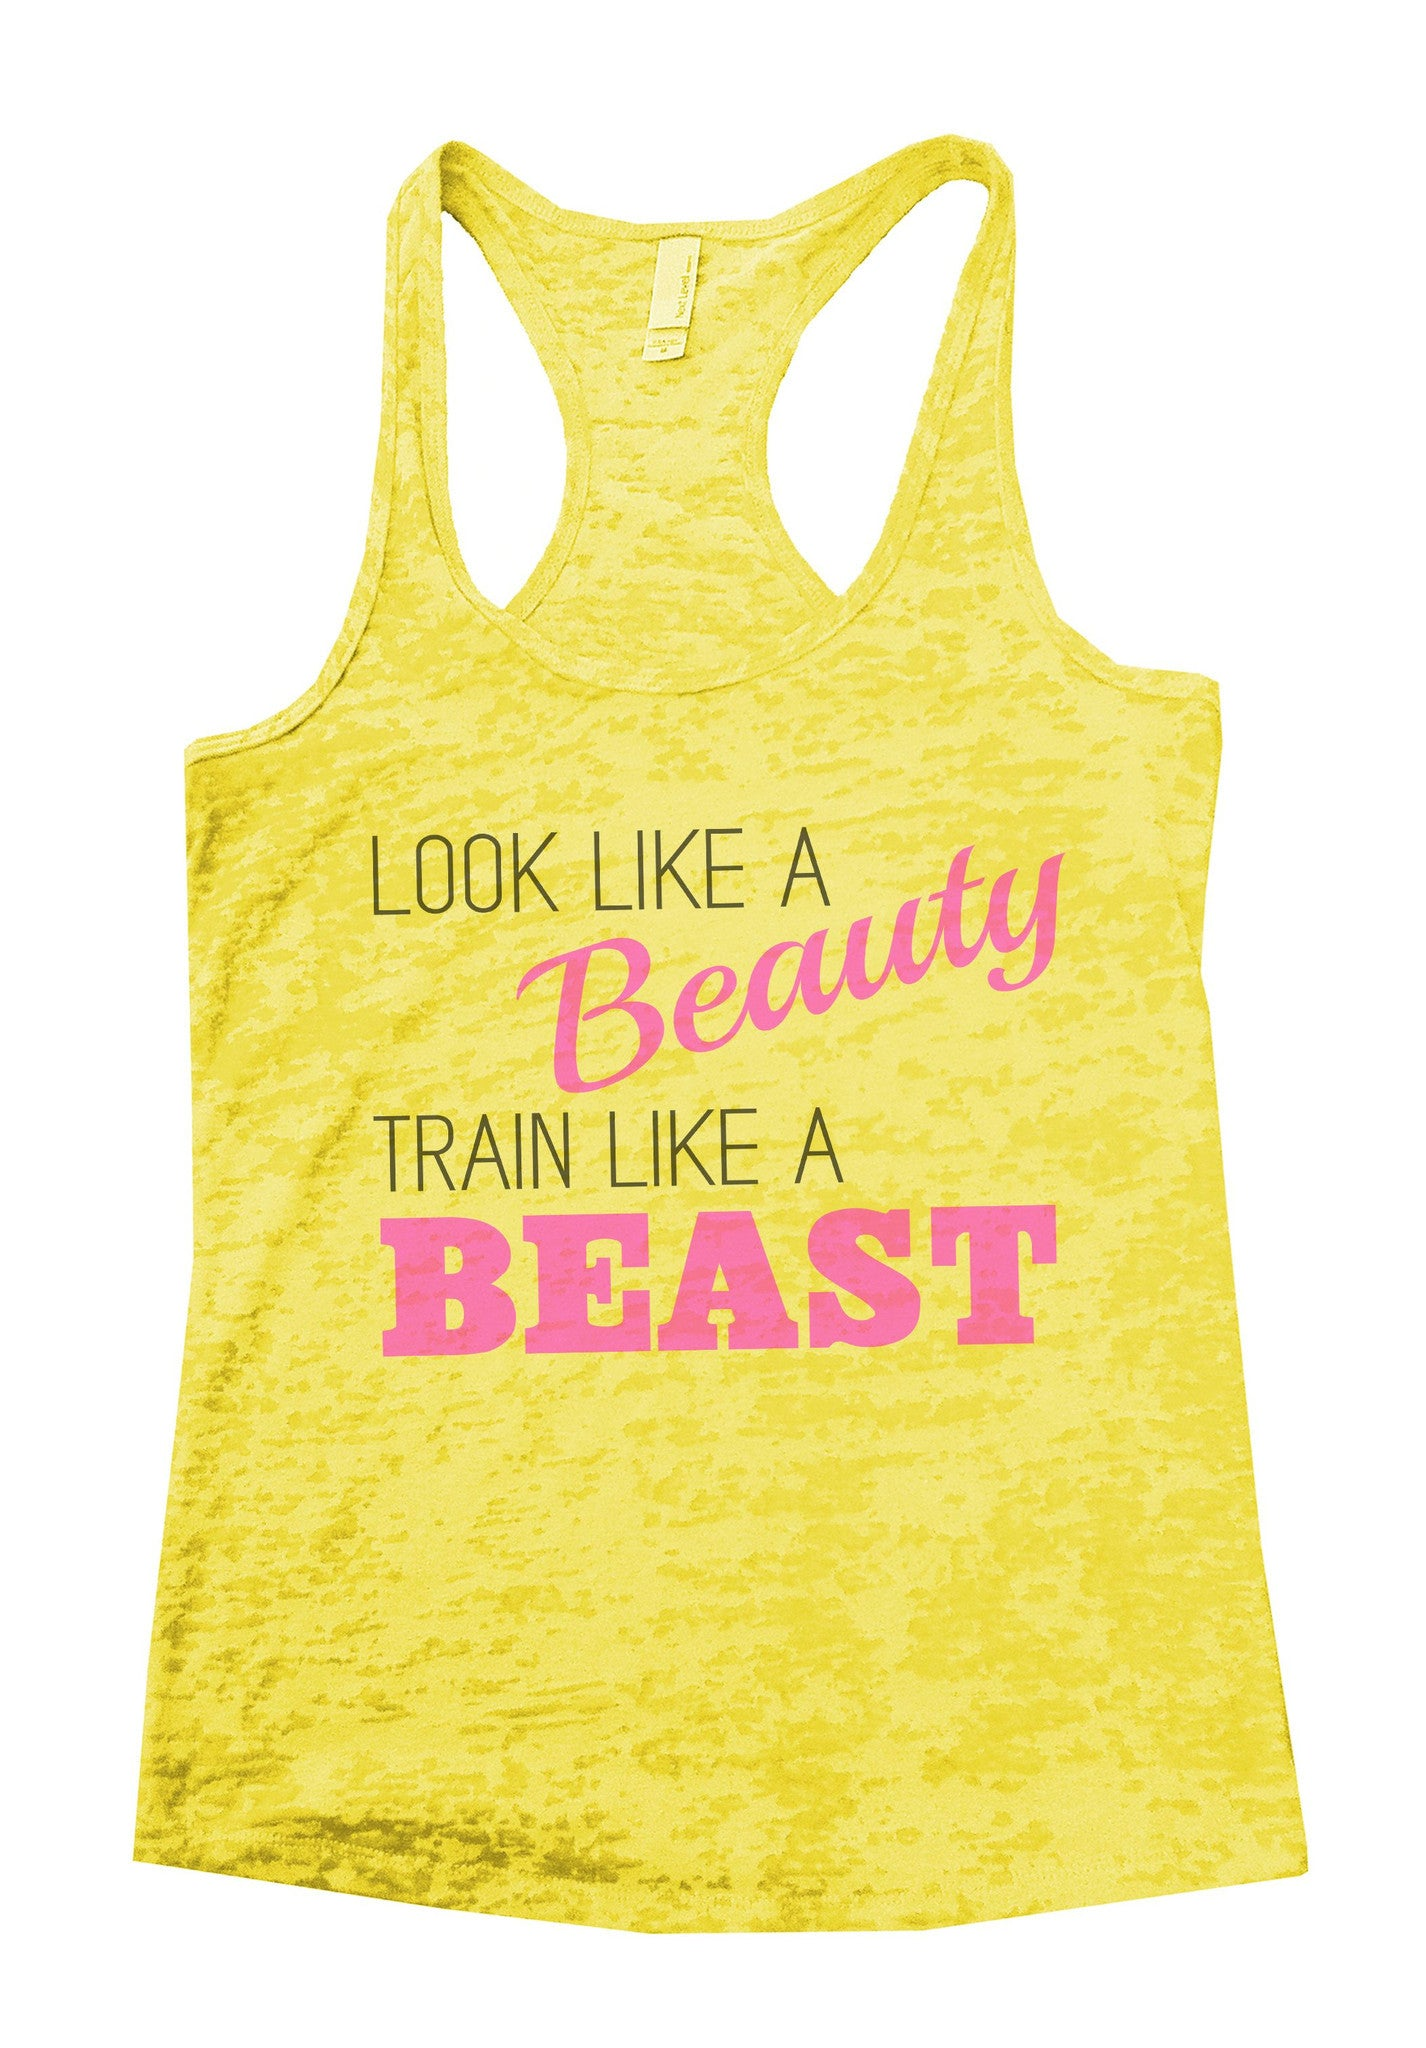 Look Like A Beauty Train Like A Beast Burnout Tank Top By BurnoutTankTops.com - 751 - Funny Shirts Tank Tops Burnouts and Triblends  - 6